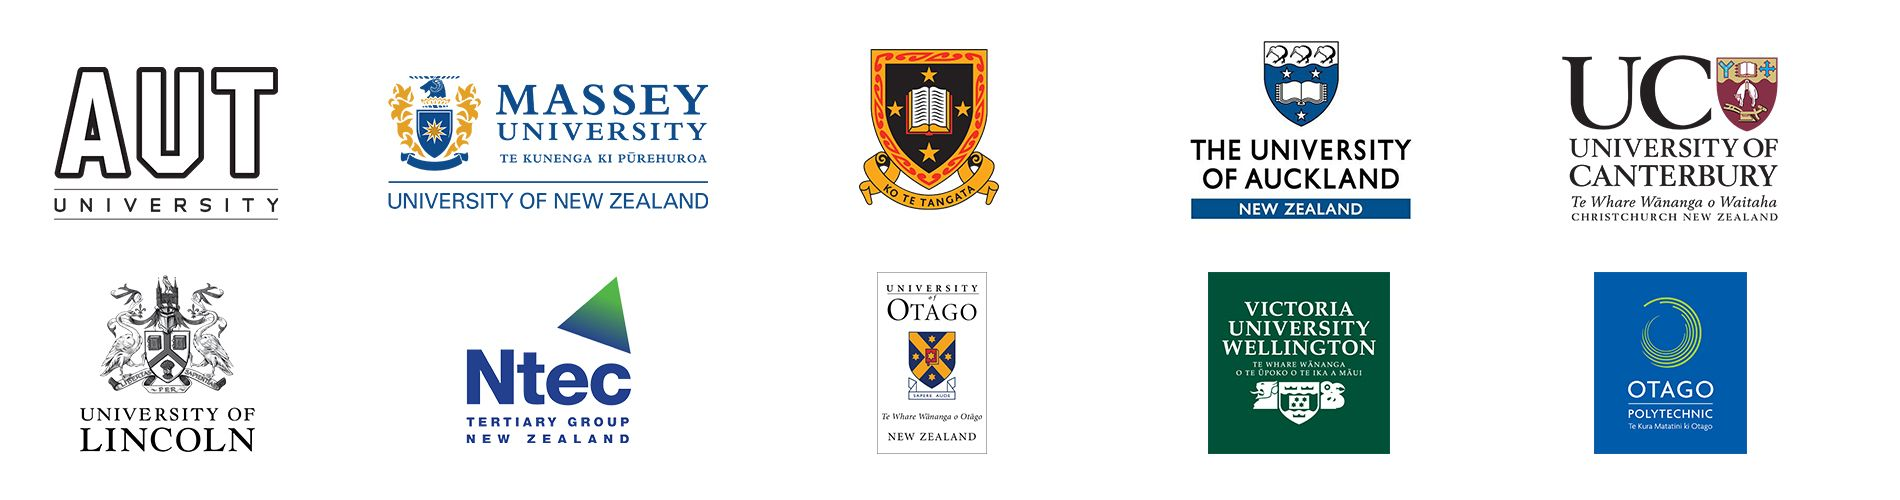 vac-global-education-NewZealand-University